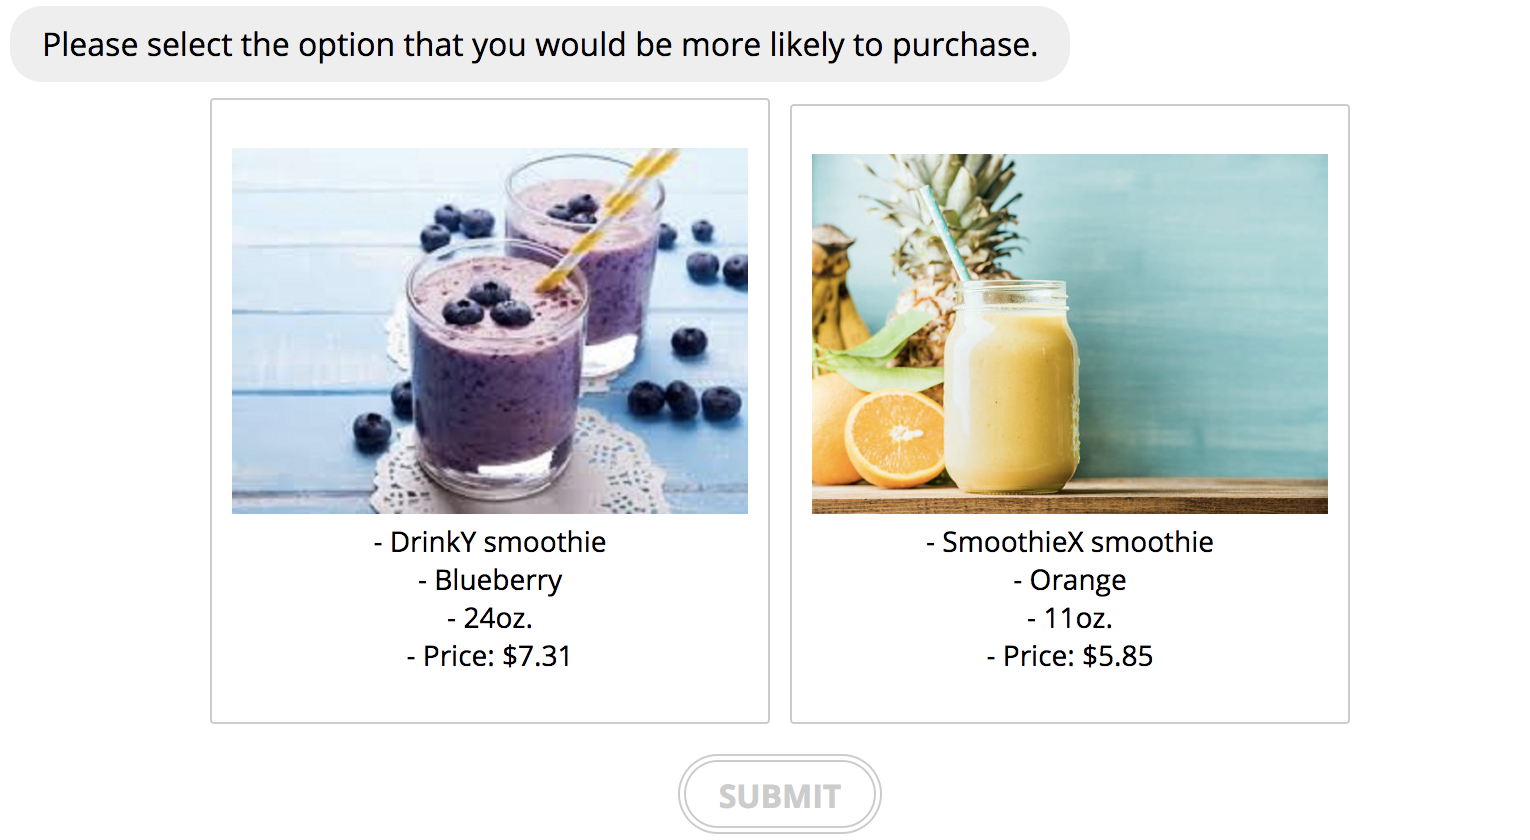 Respondent view of a discrete choice survey question comparing two smoothie products